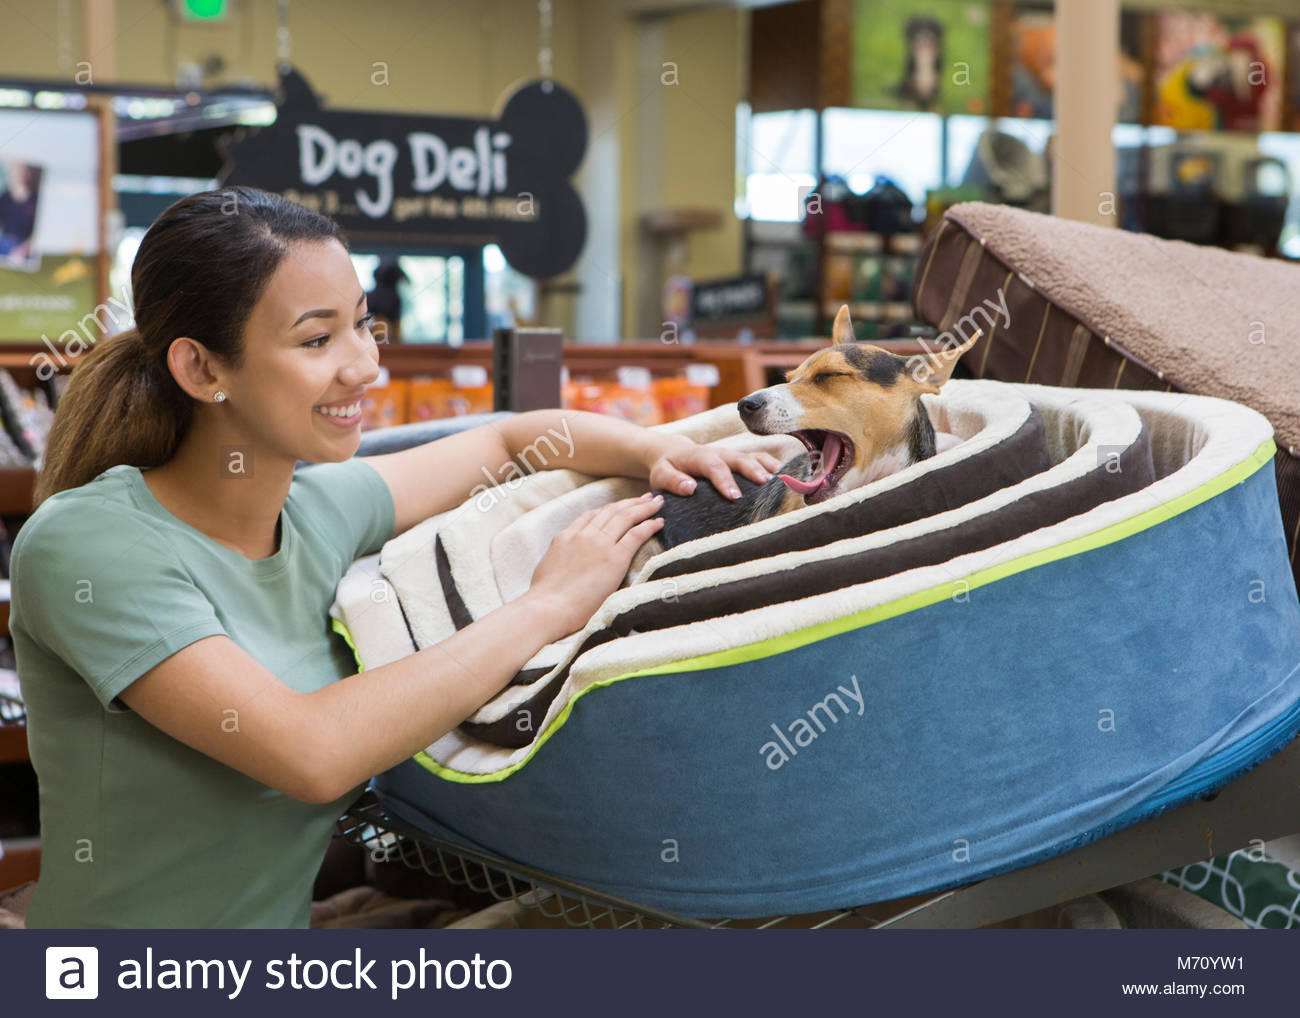 Young asian woman looking at small terrier dog yawning in dog bed in a pet store - Stock Image